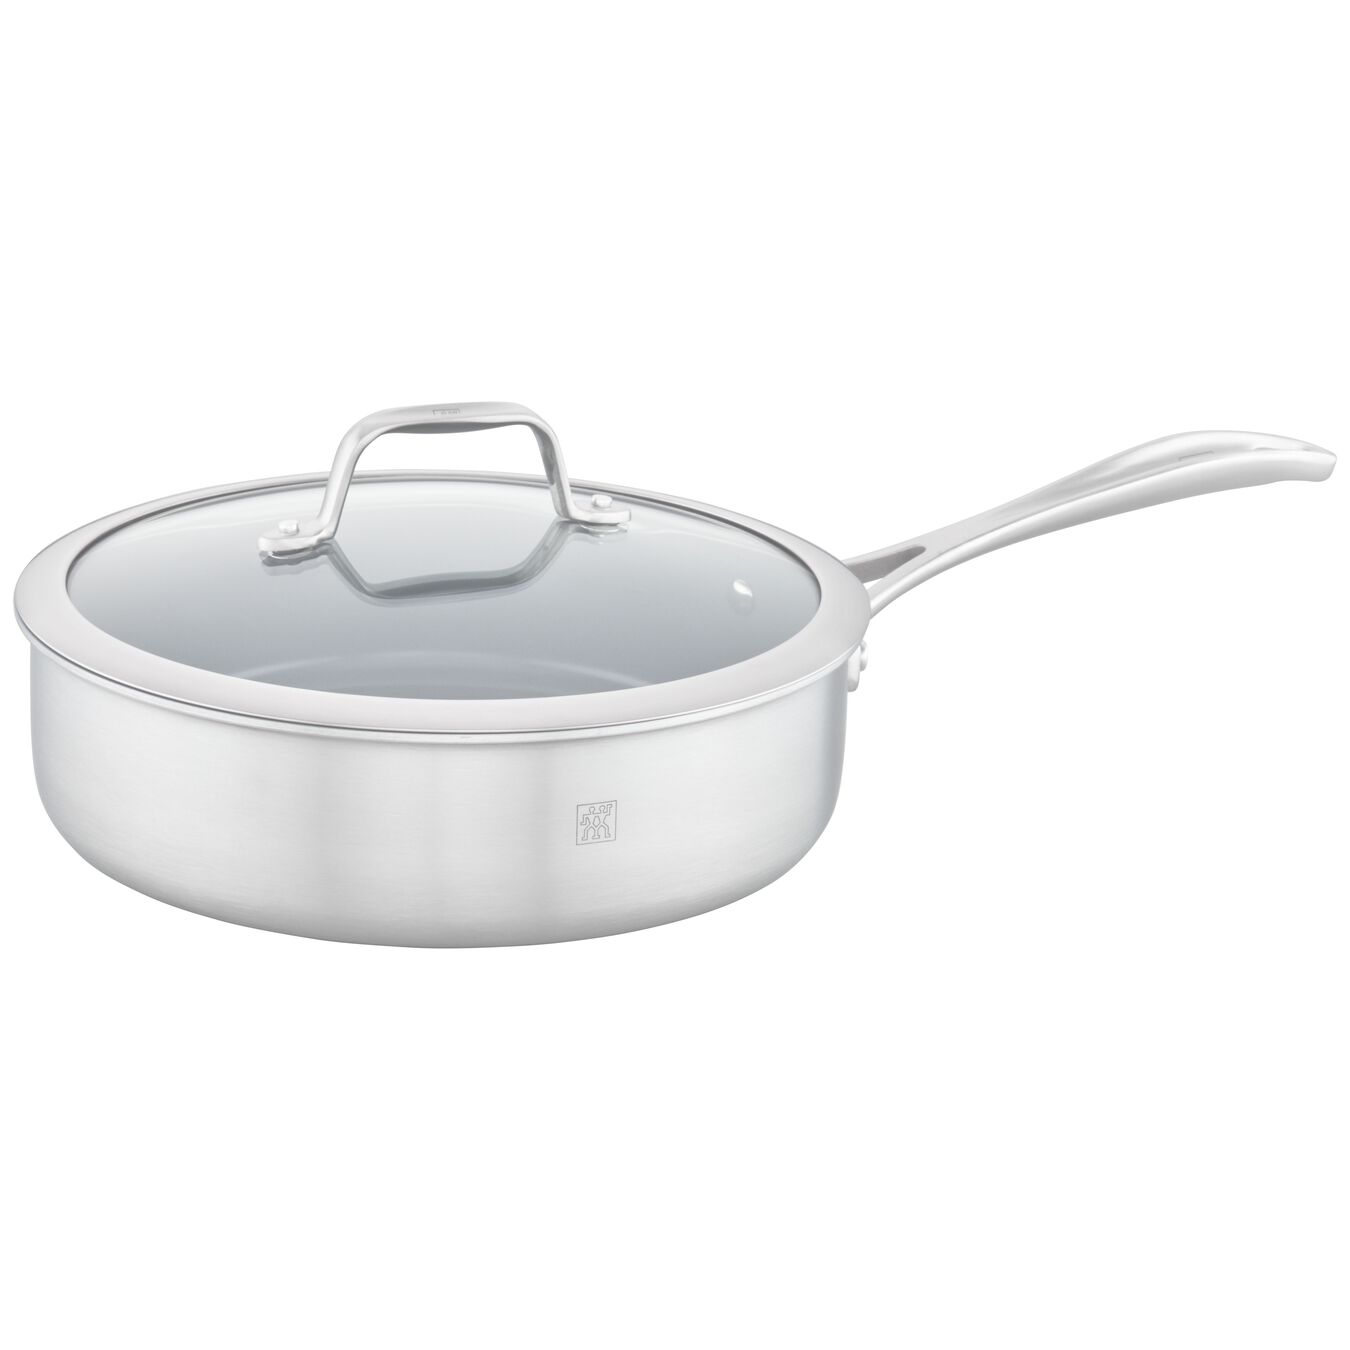 3-ply 3-qt Stainless Steel Ceramic Nonstick Saute Pan,,large 1